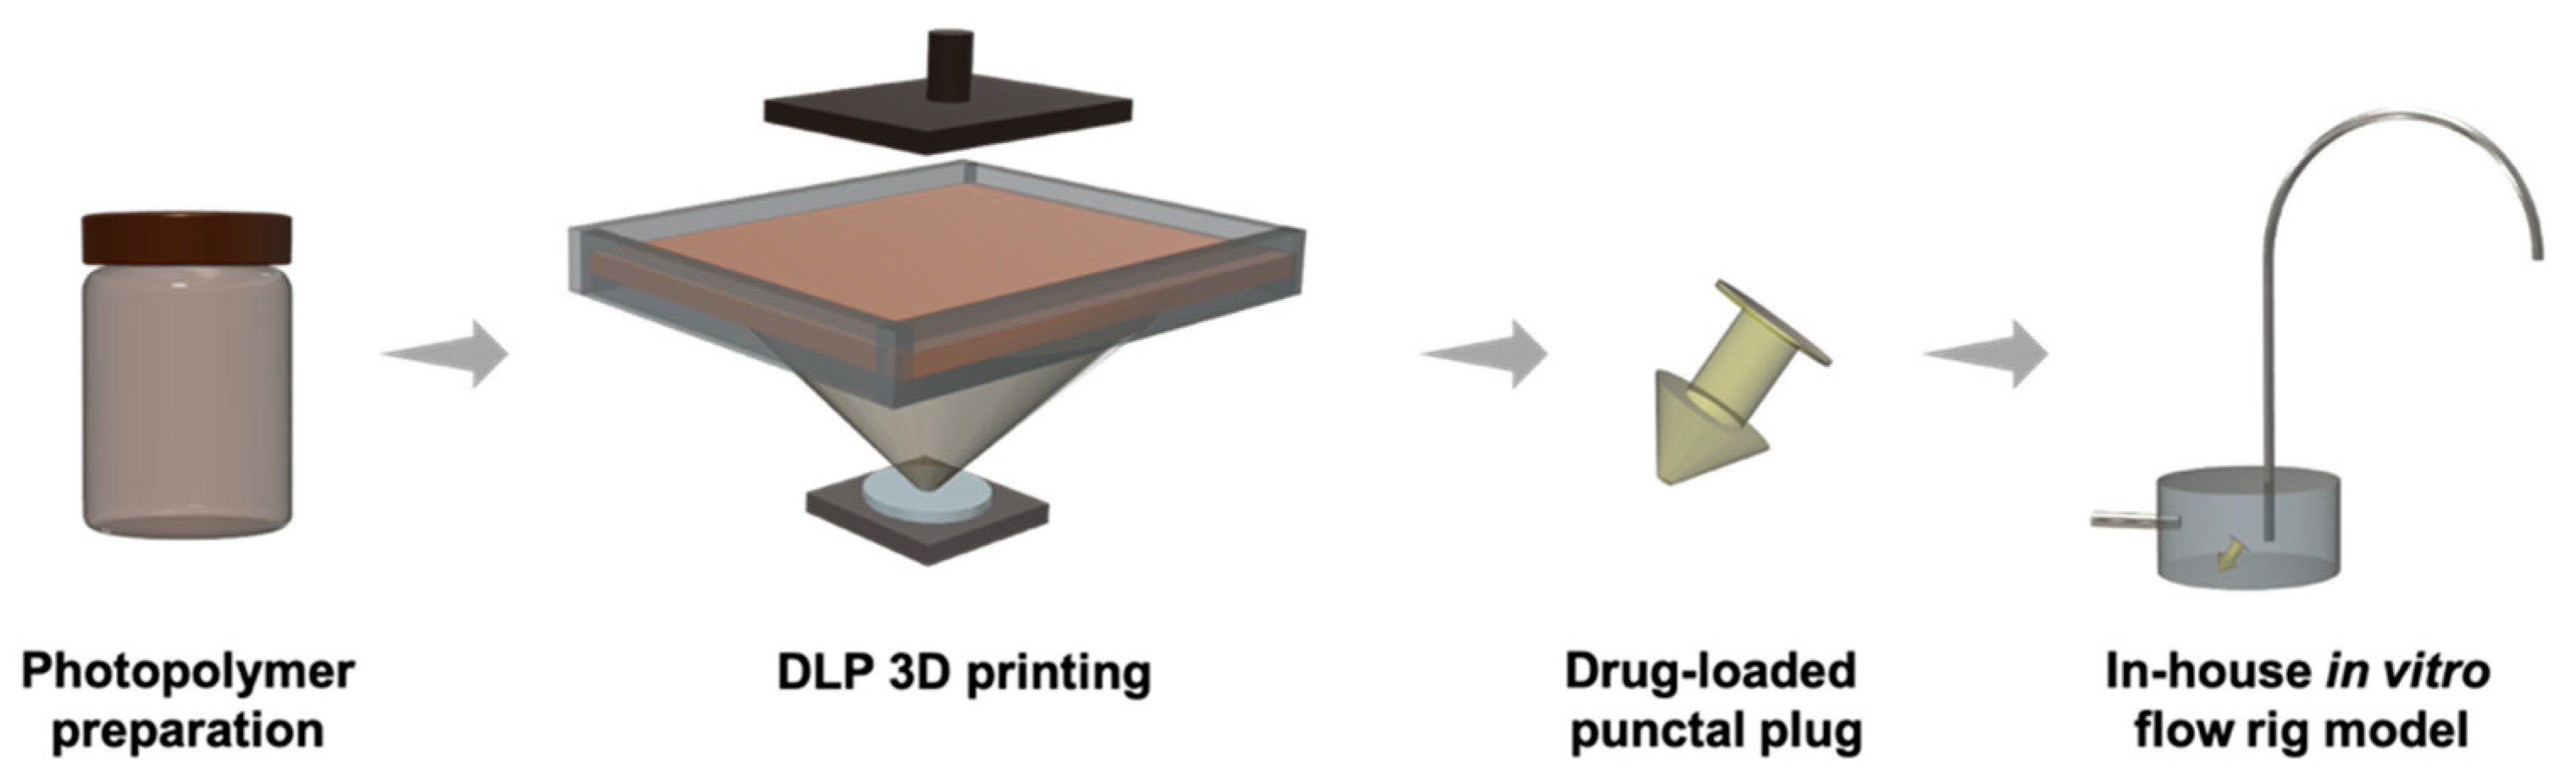 The DLP 3D printing process and in-house flow rig model for in vitro dissolution studies. Image via MDPI.